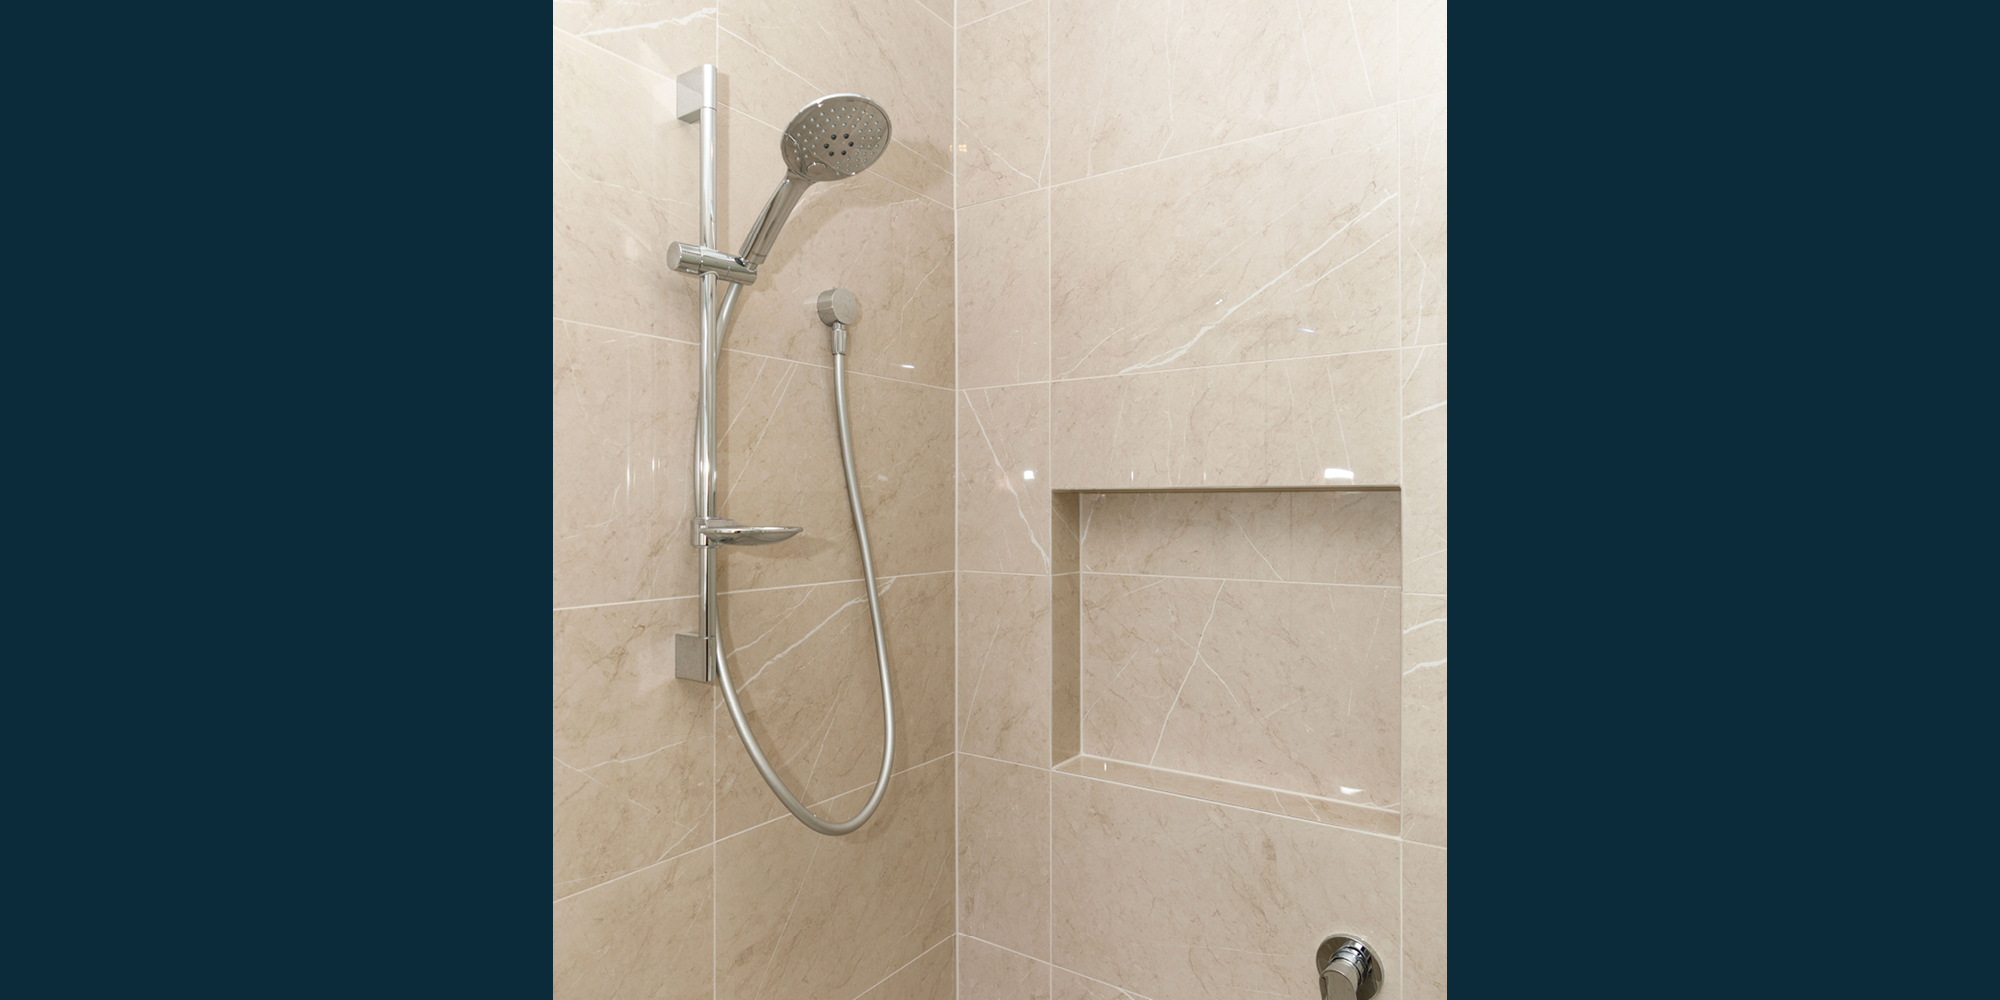 Normus Homes shower detail